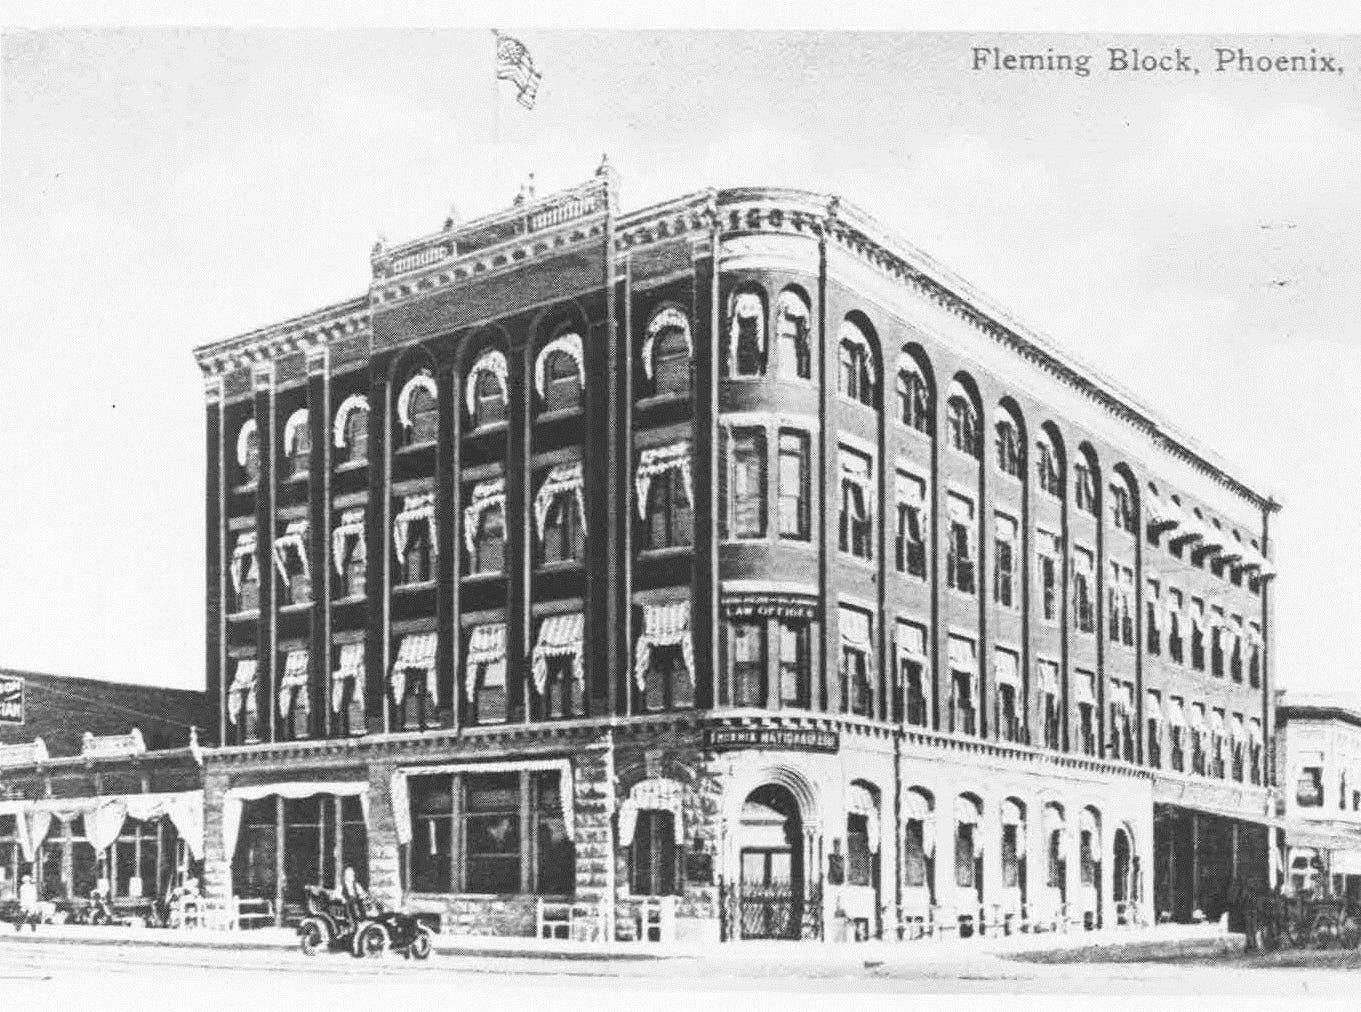 The Fleming Building was completed in 1883. It was torn down nearly 100 years later in the 1980s.